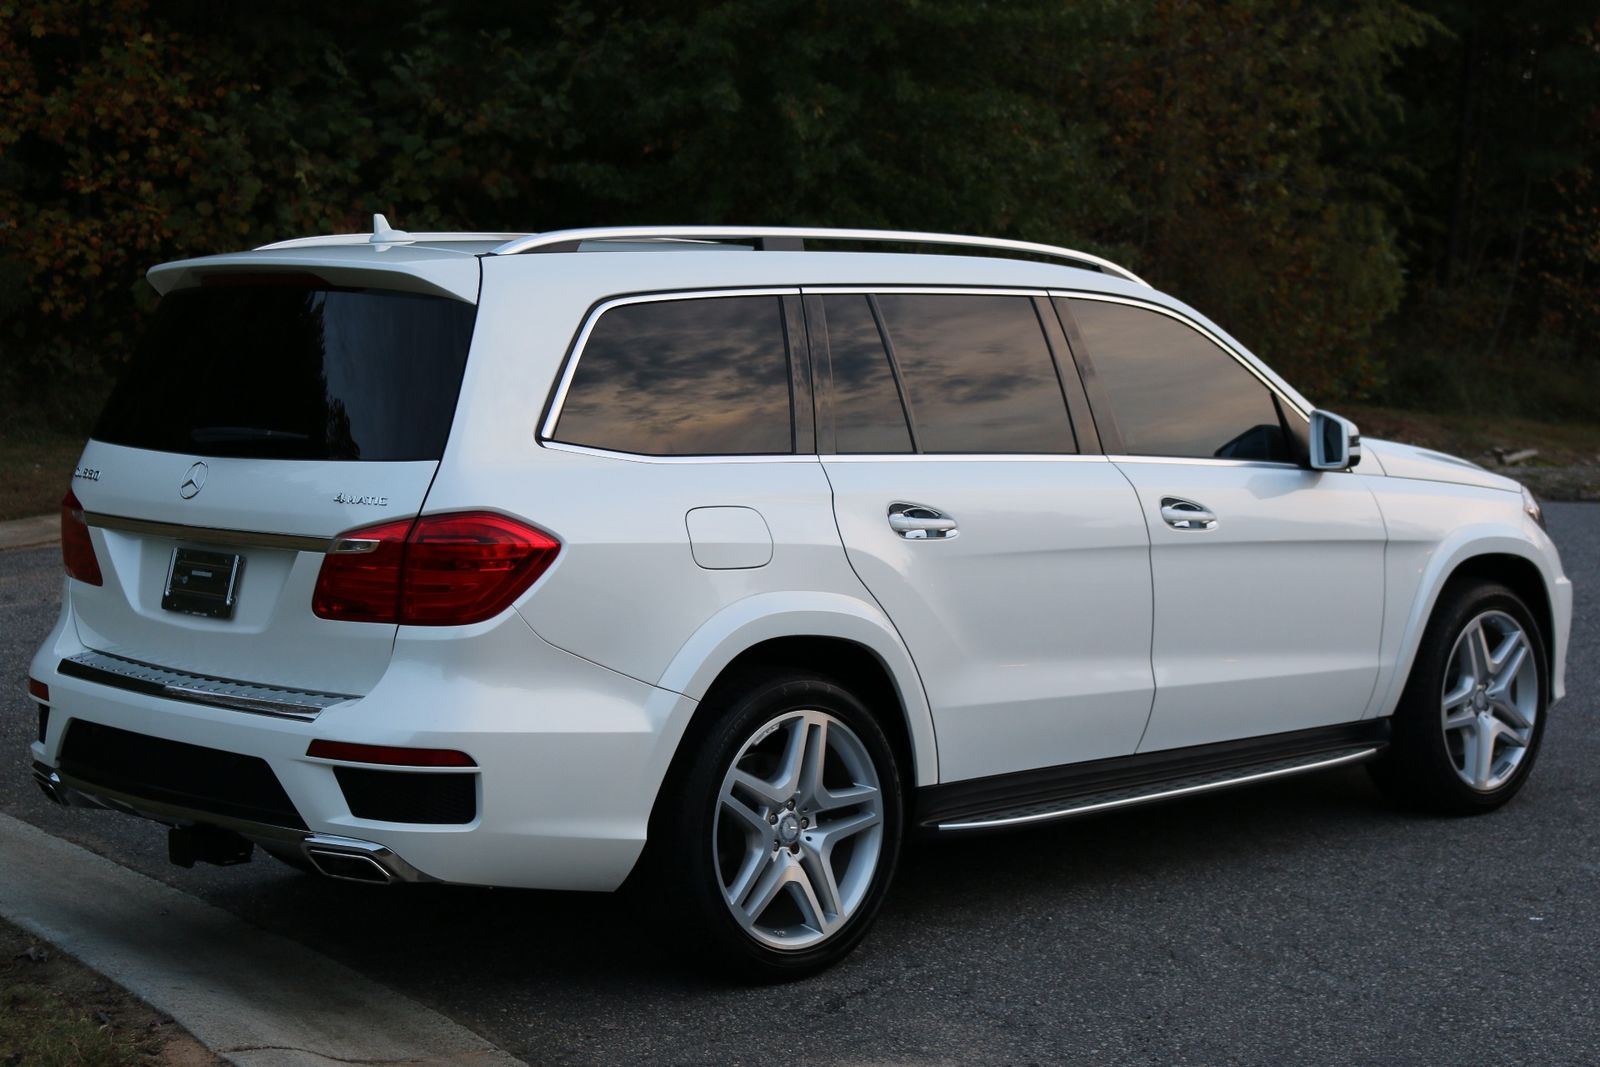 2015 Gl 550 3rd Row Suv White Blk Dvd 34k Mi Like New In